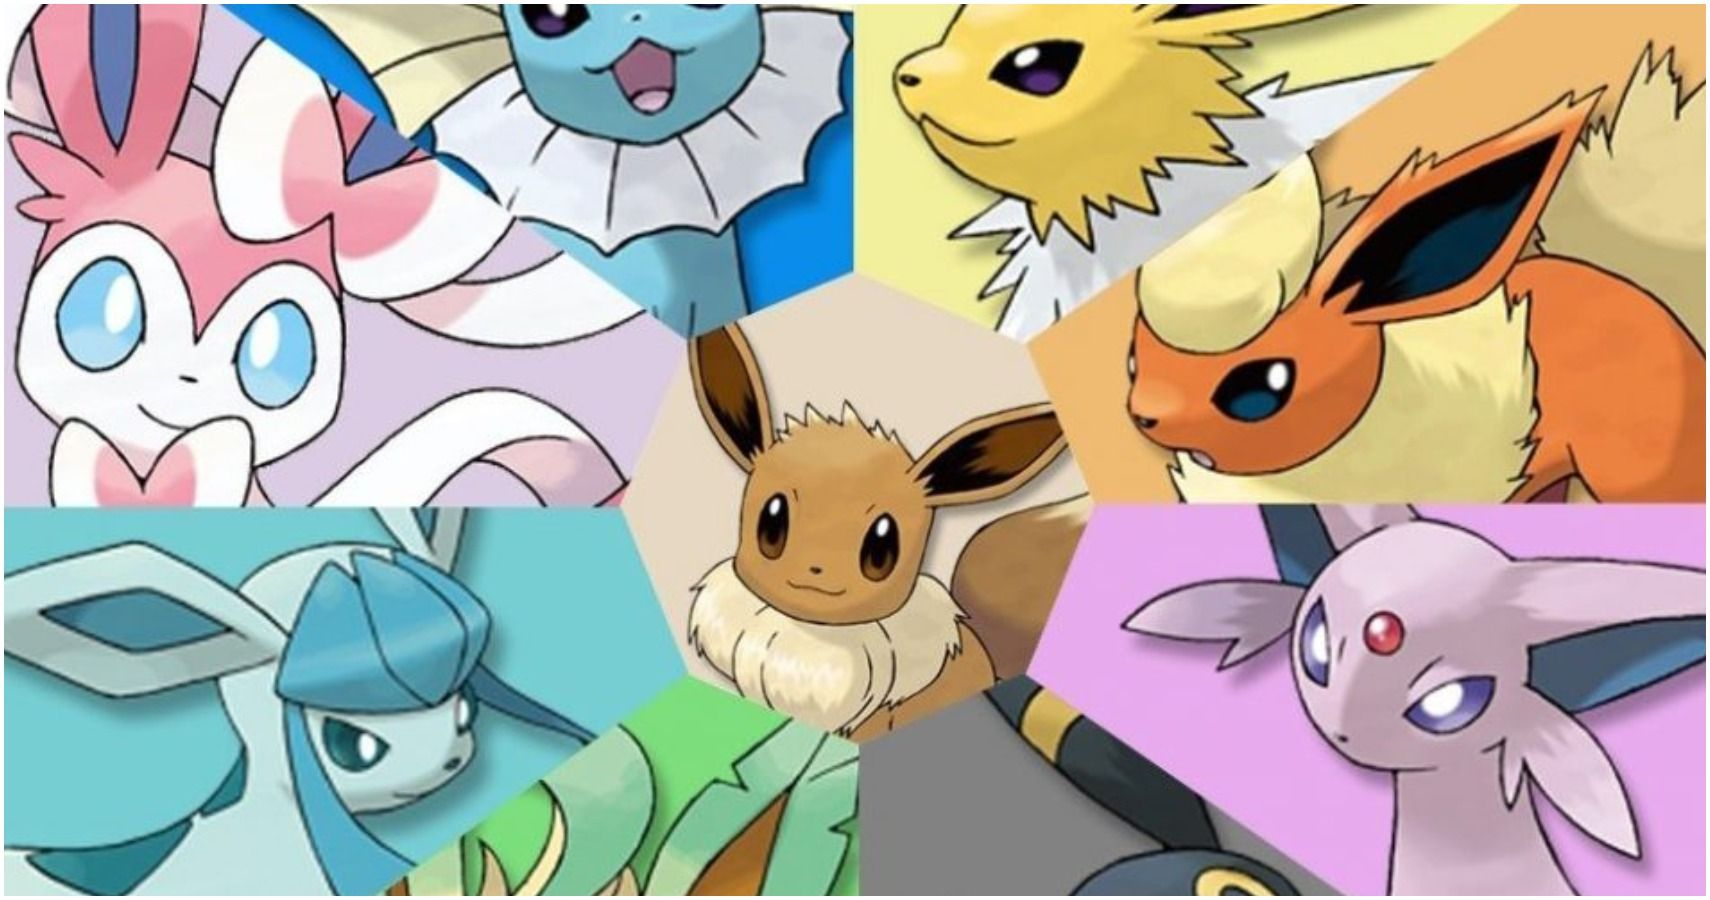 What Eeveelutions Could Pokemon Sword And Shield Introduce